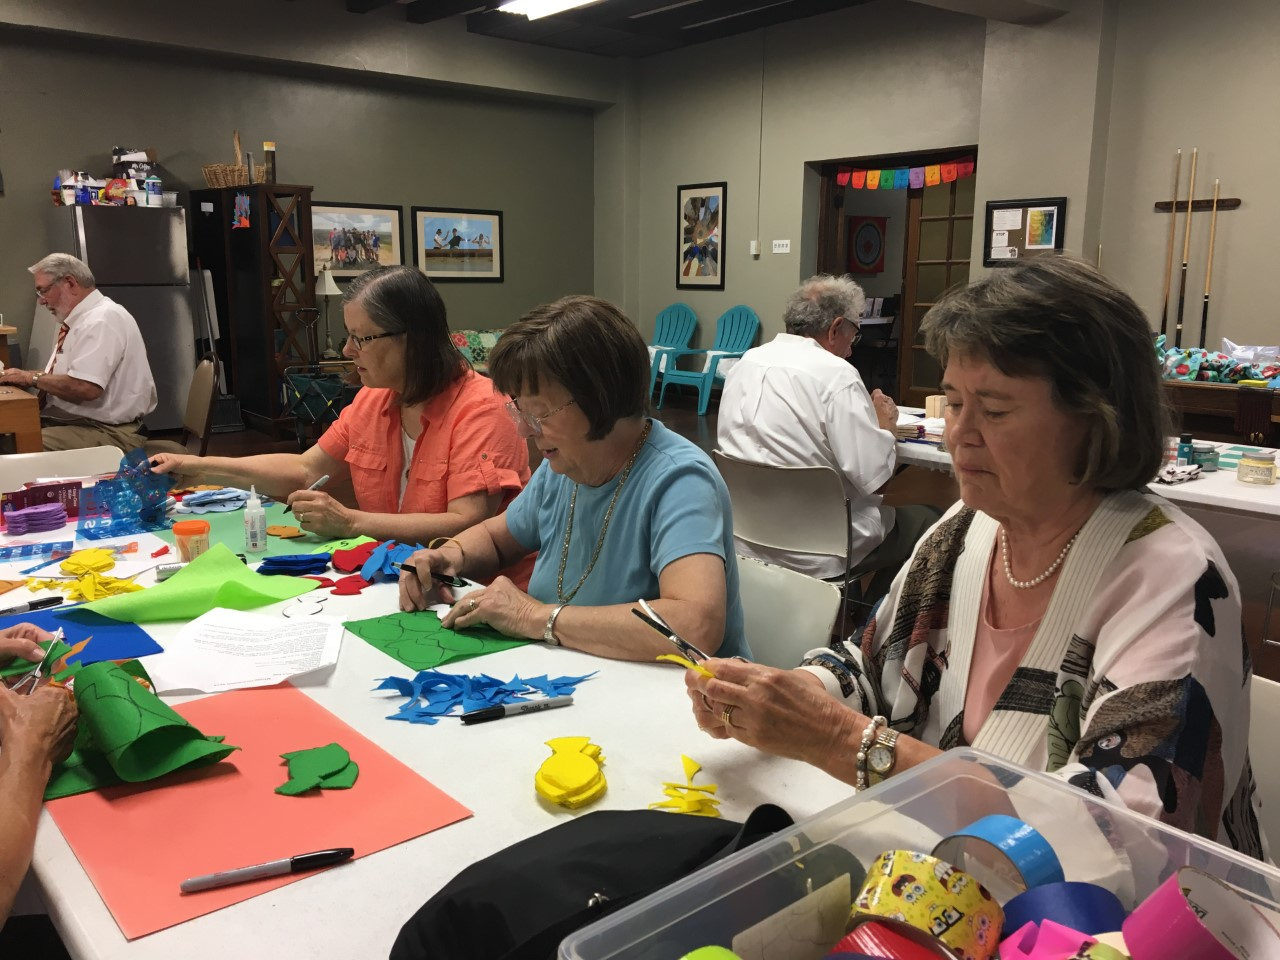 women at a crafting table